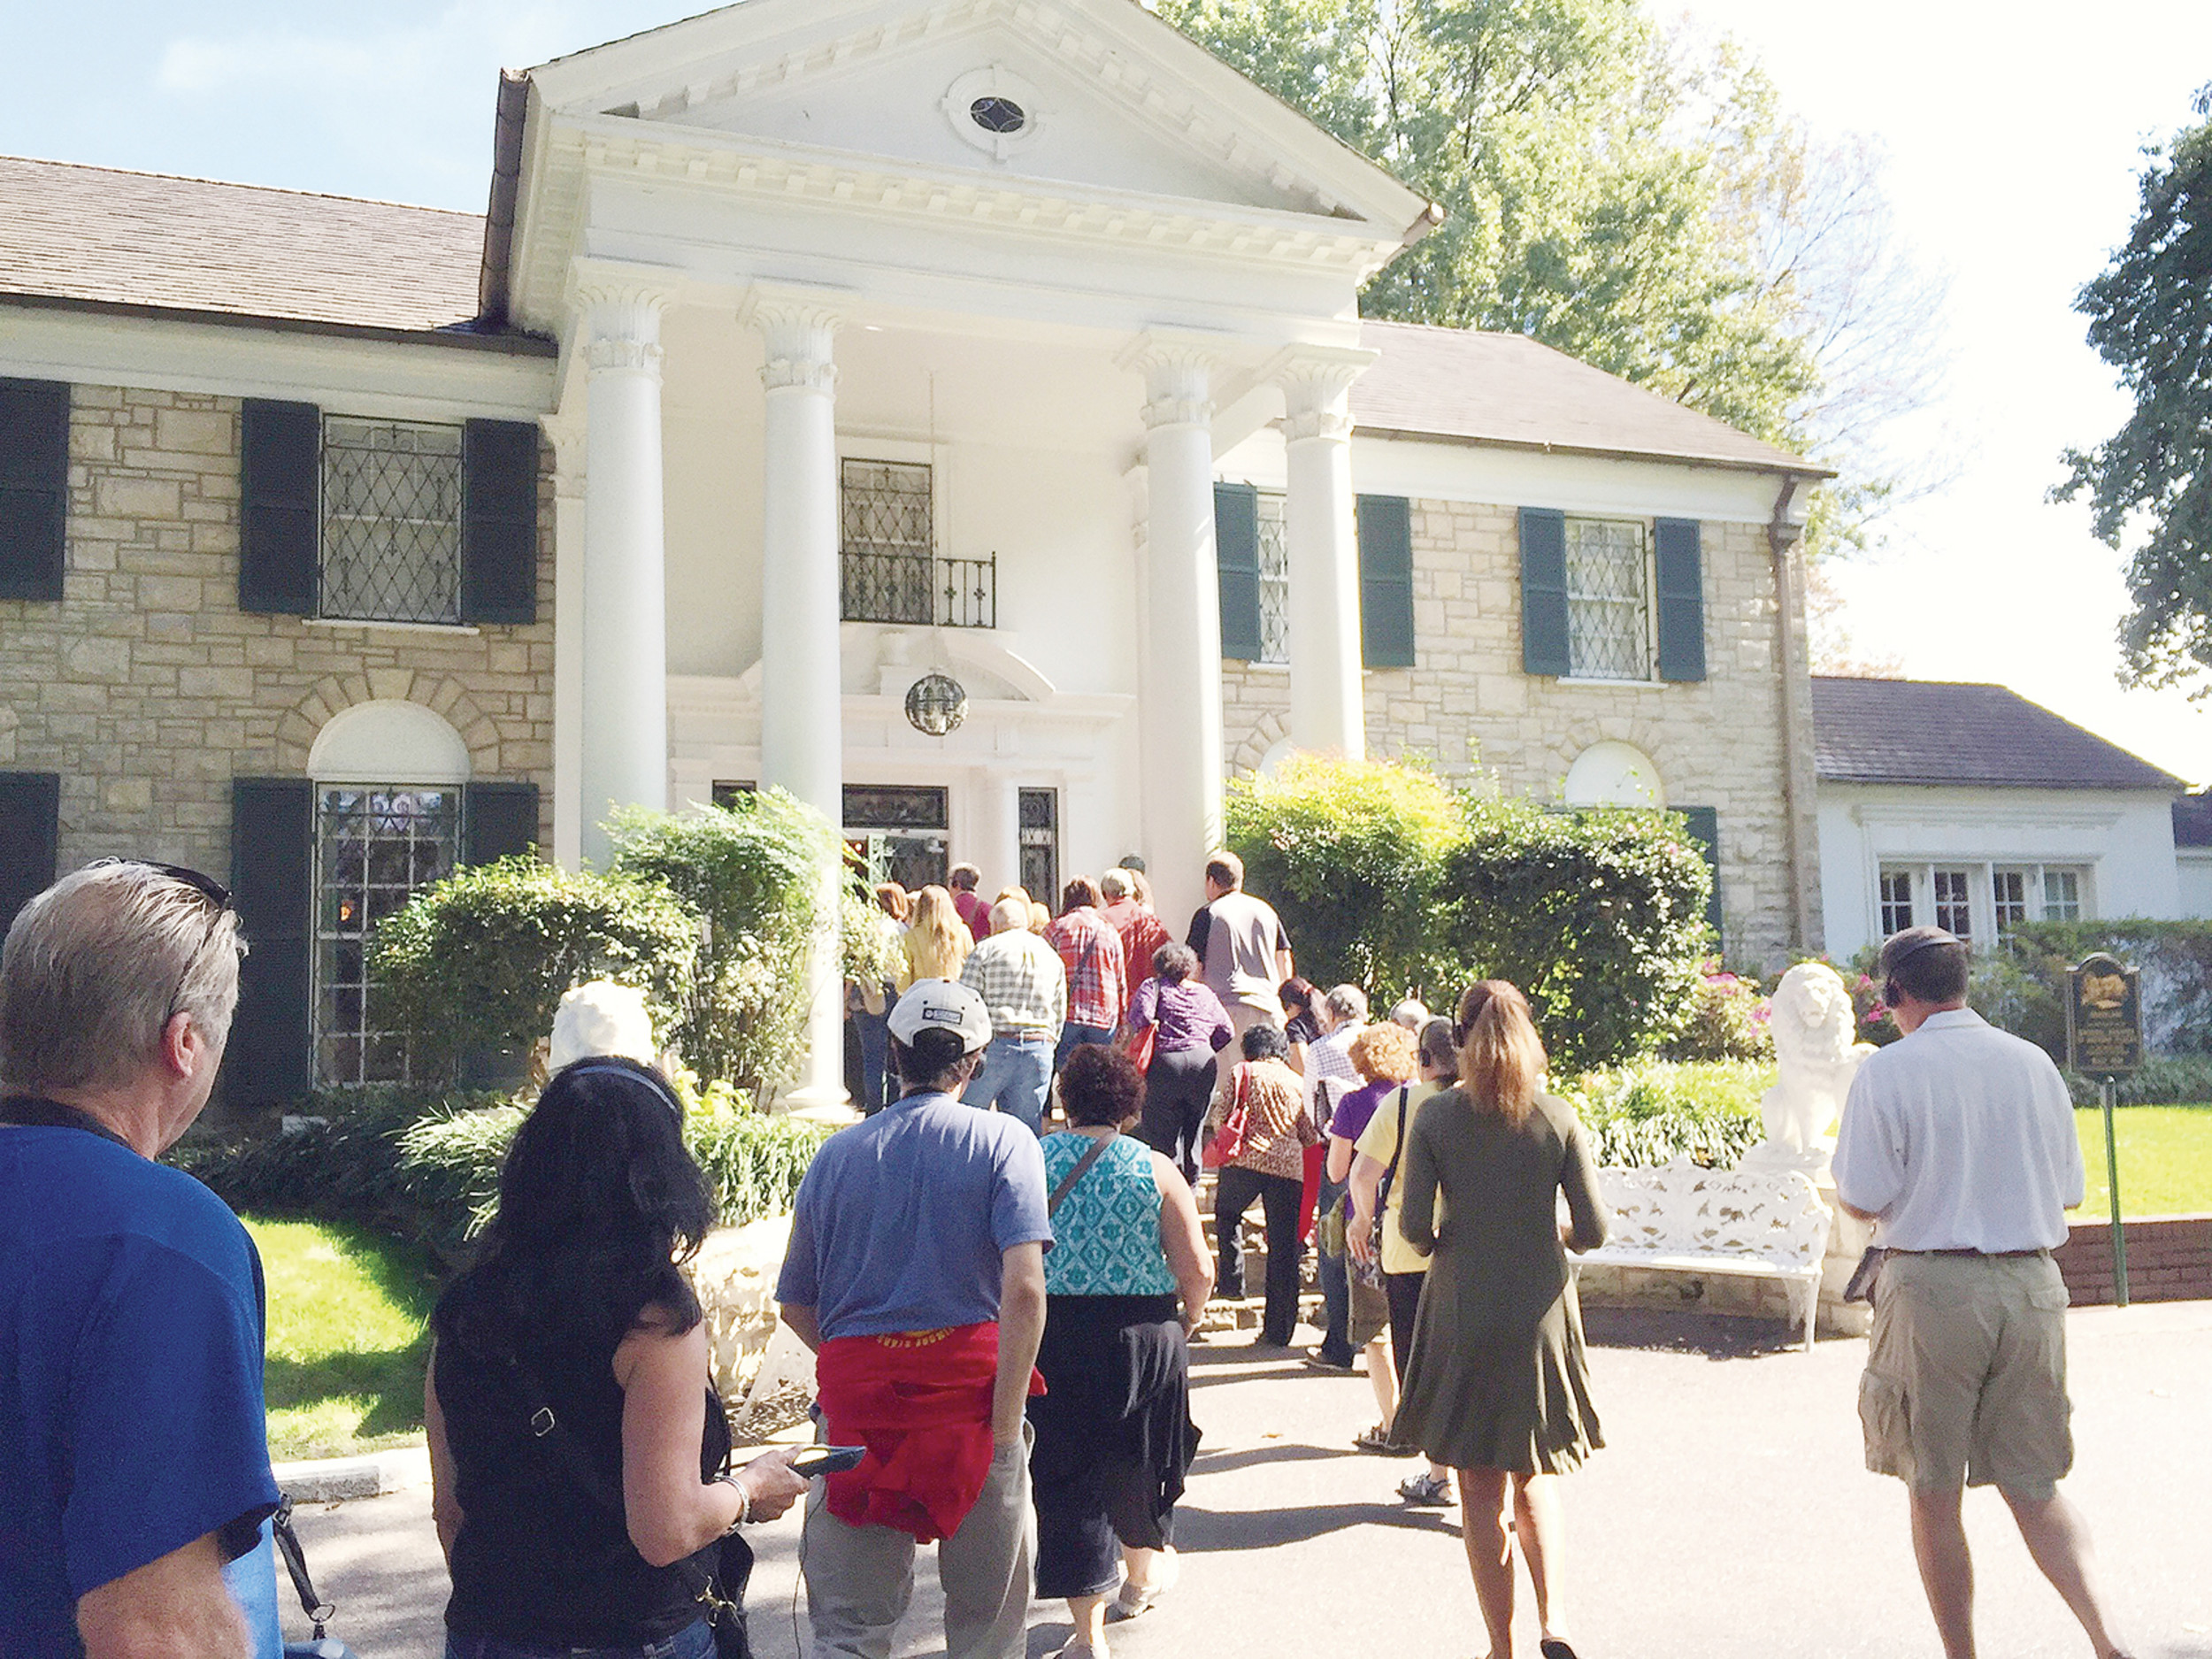 Graceland in Memphis, Tenn., the home of Elvis Presley, continues to be a popular tourist attraction, and the Graceland experience is expanding to offer guests a further glimpse into the King's life.   Daily Mountain Eagle - Nicole Smith